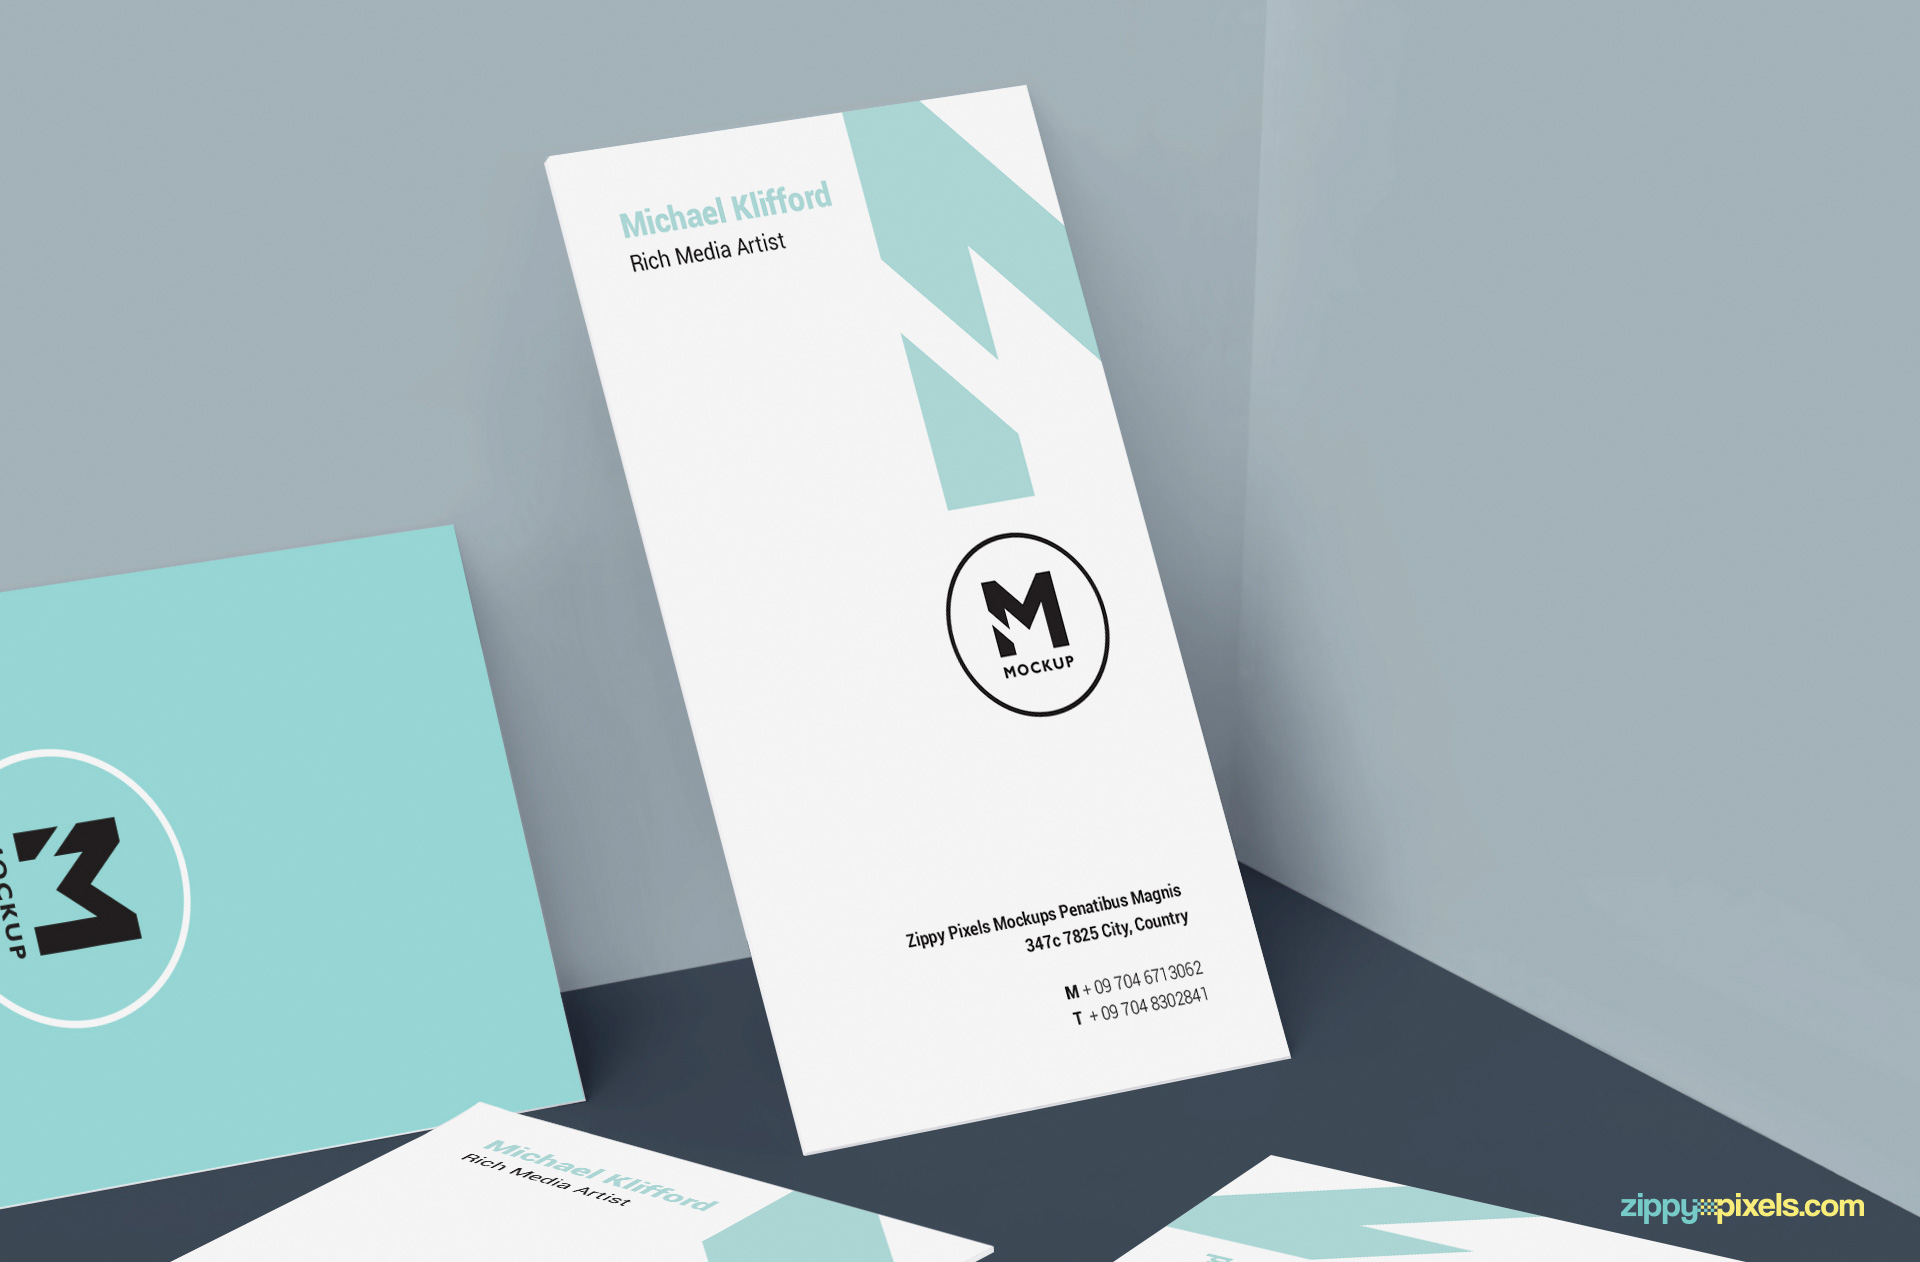 display your front and back card designs with ease